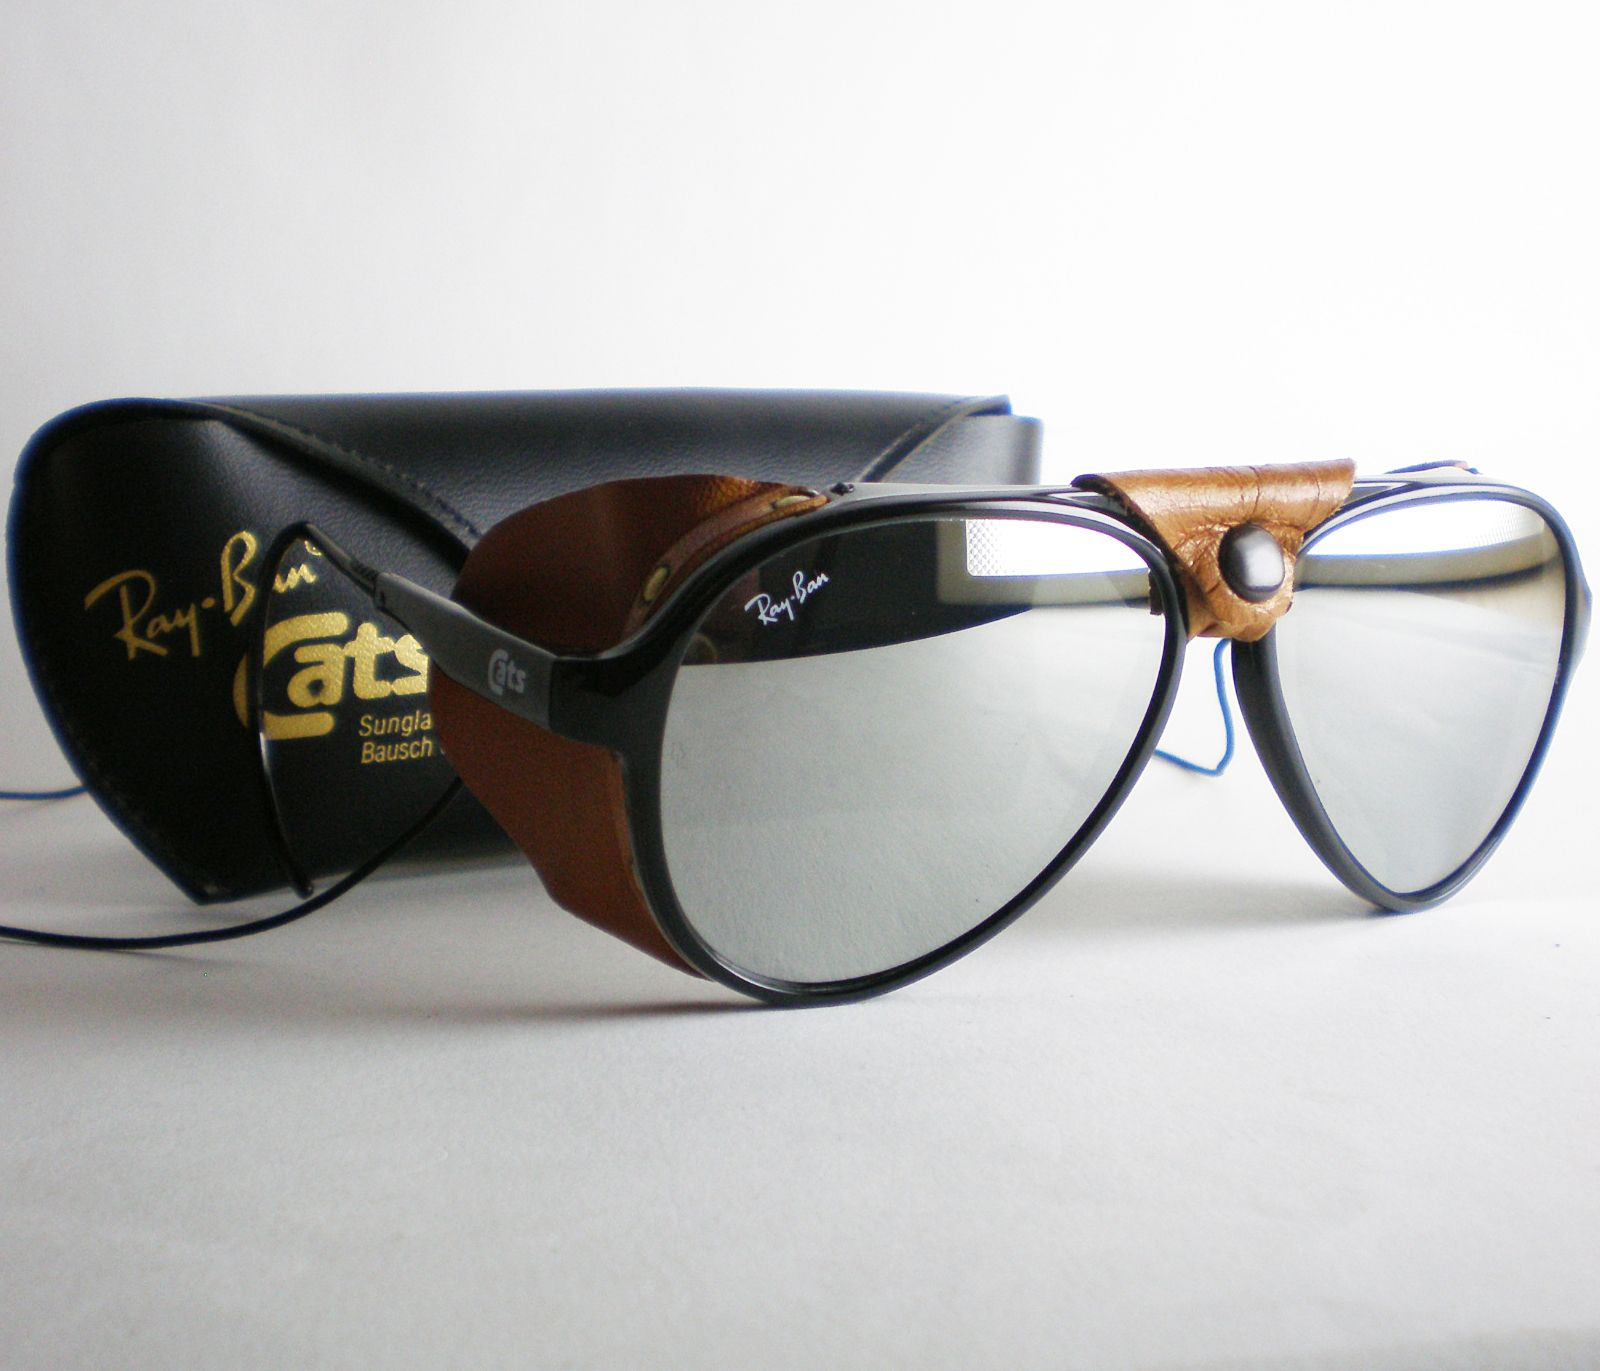 dd12a97105145 Vintage Ray Ban CATS 8000 MIRRORED Sunglasses aviator side shield leathers  black